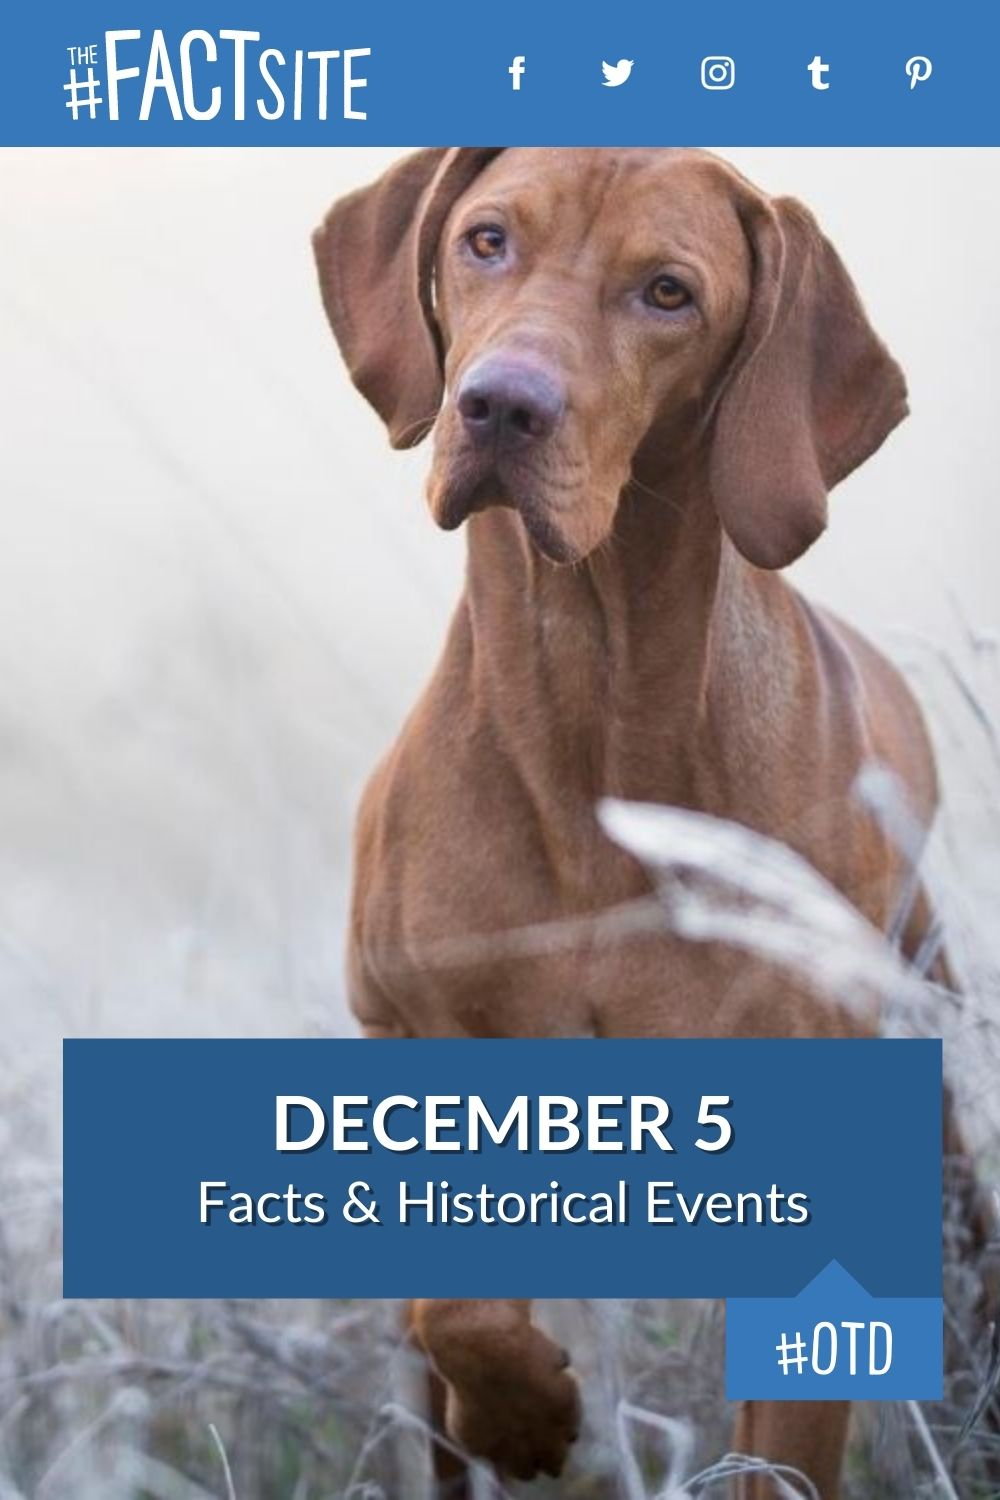 Facts & Historic Events That Happened on December 5